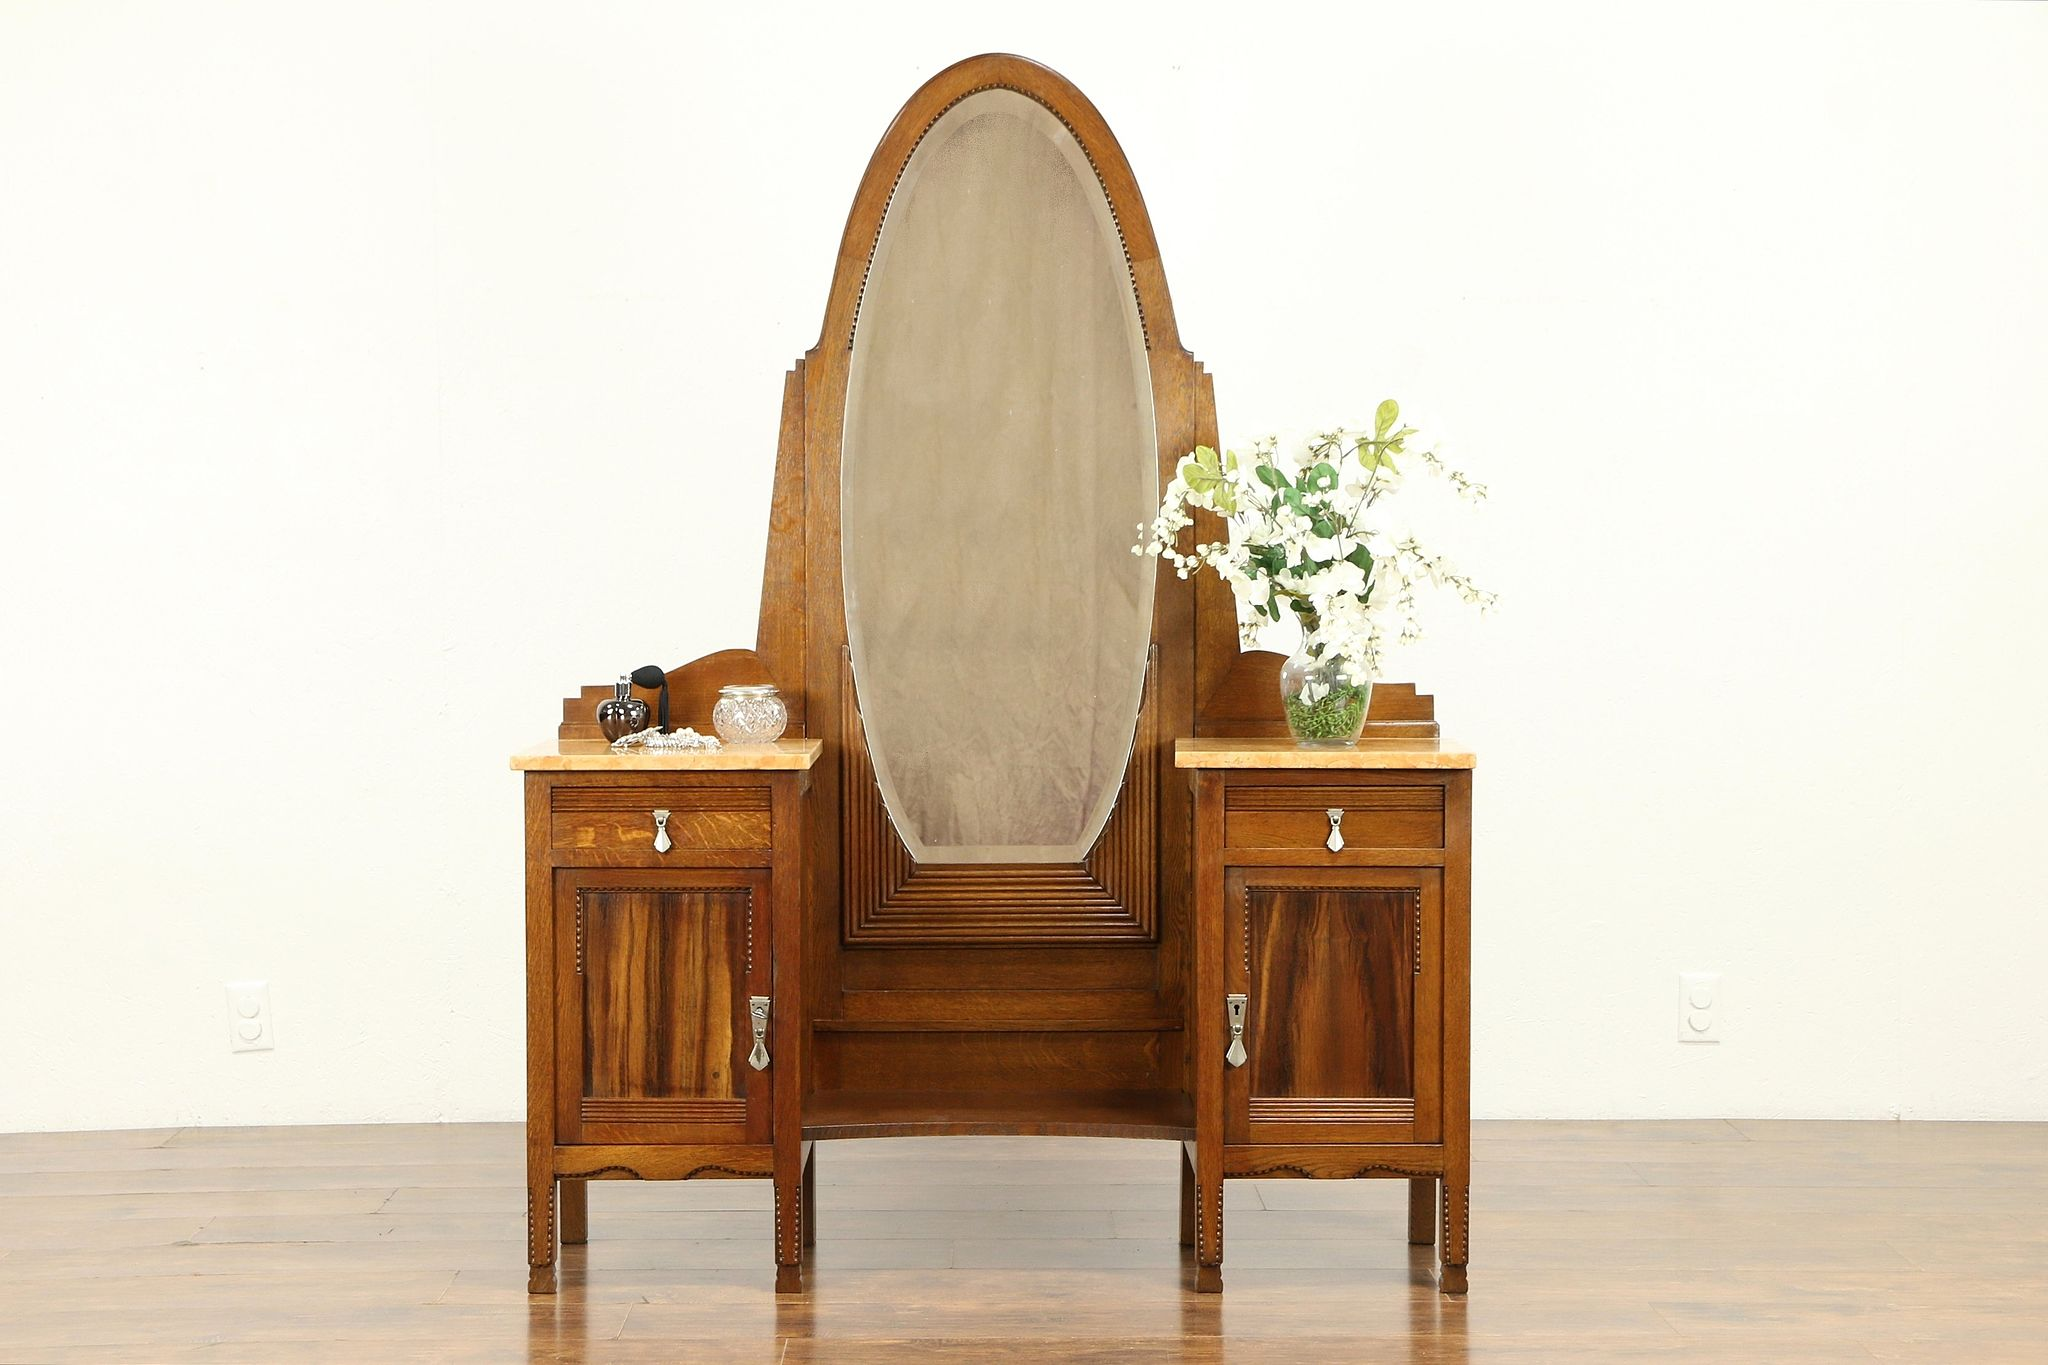 Beau Oak French Art Deco Antique Vanity Or Dressing Table, Beveled Mirror #31174  Photo